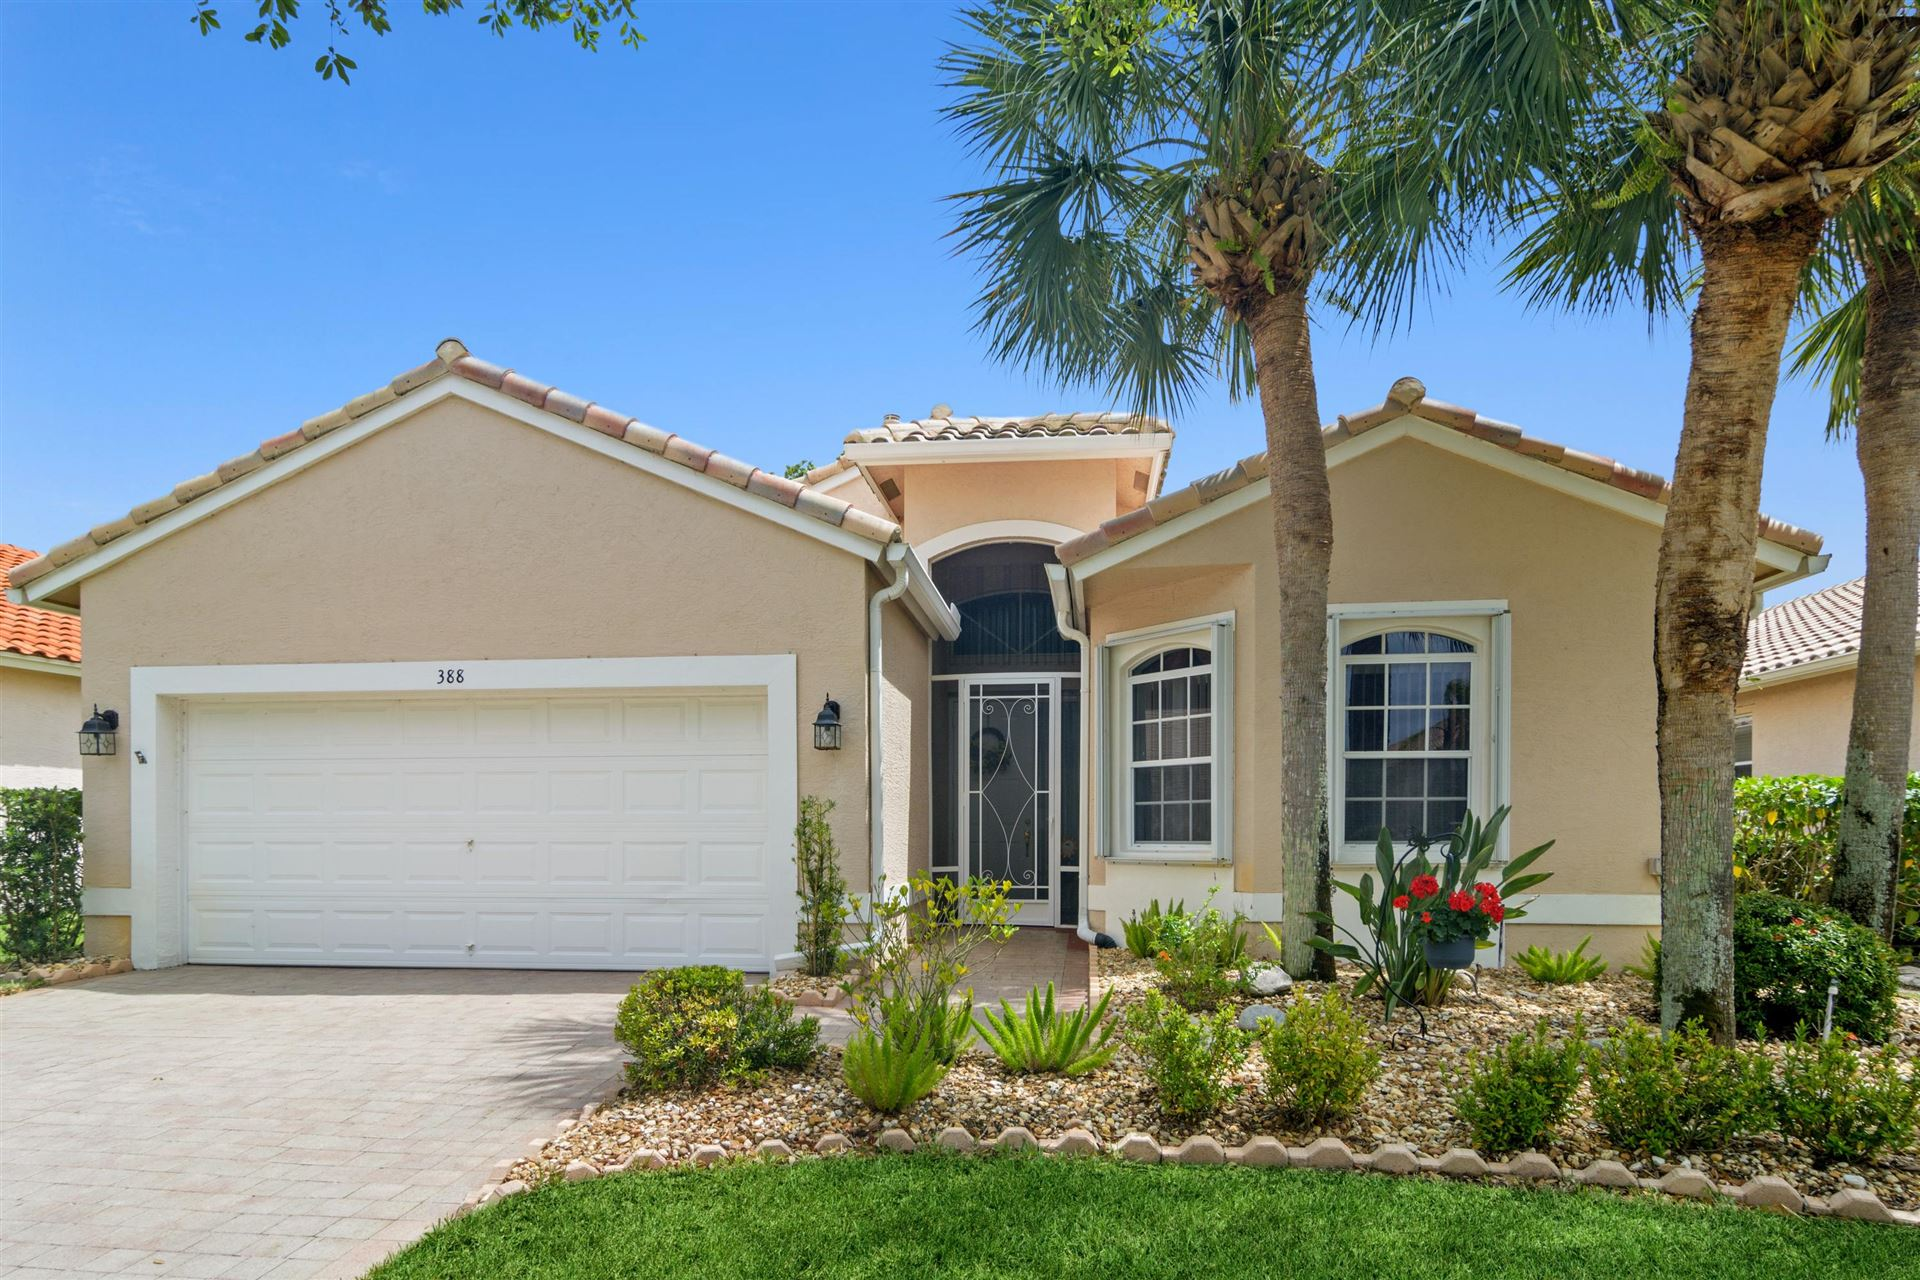 Photo of 388 NW Toscane Trail, Port Saint Lucie, FL 34986 (MLS # RX-10705221)